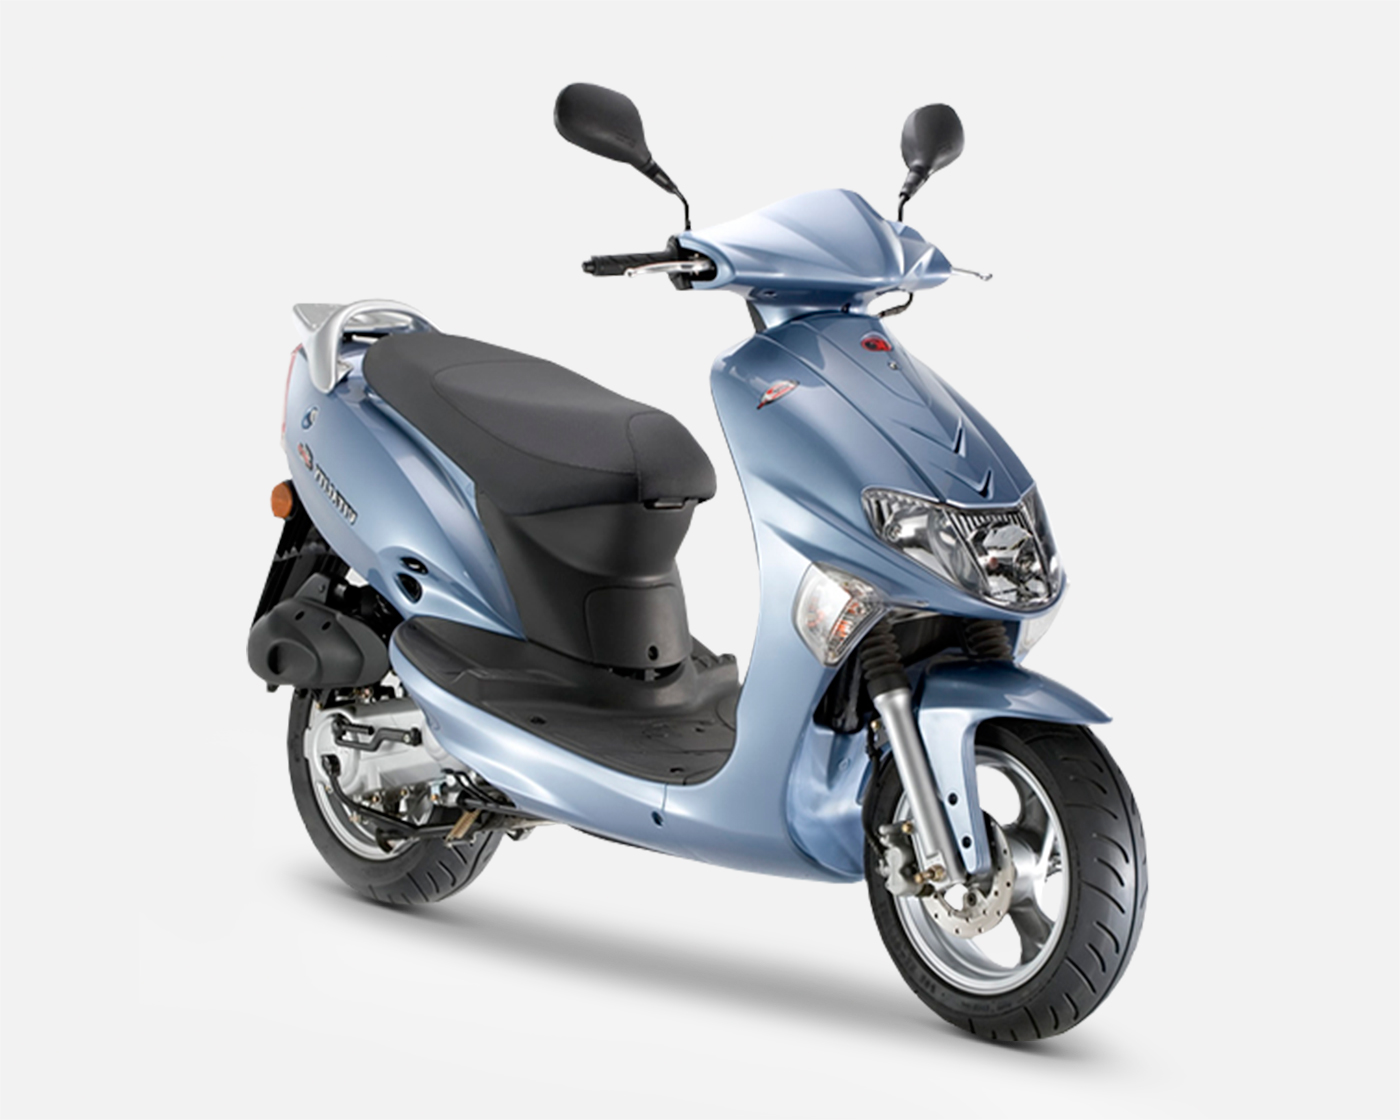 Kymco Vitality 50 2005 images #101899